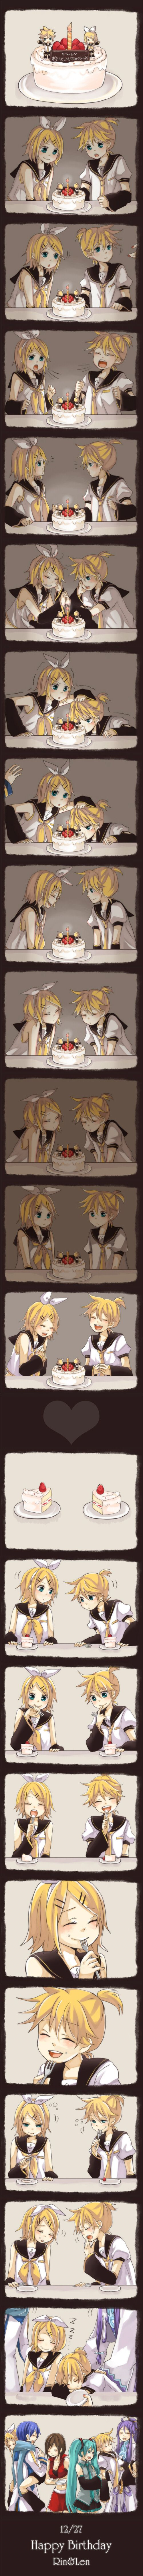 Vocaloid - rin and len. This is the cutest thing ever